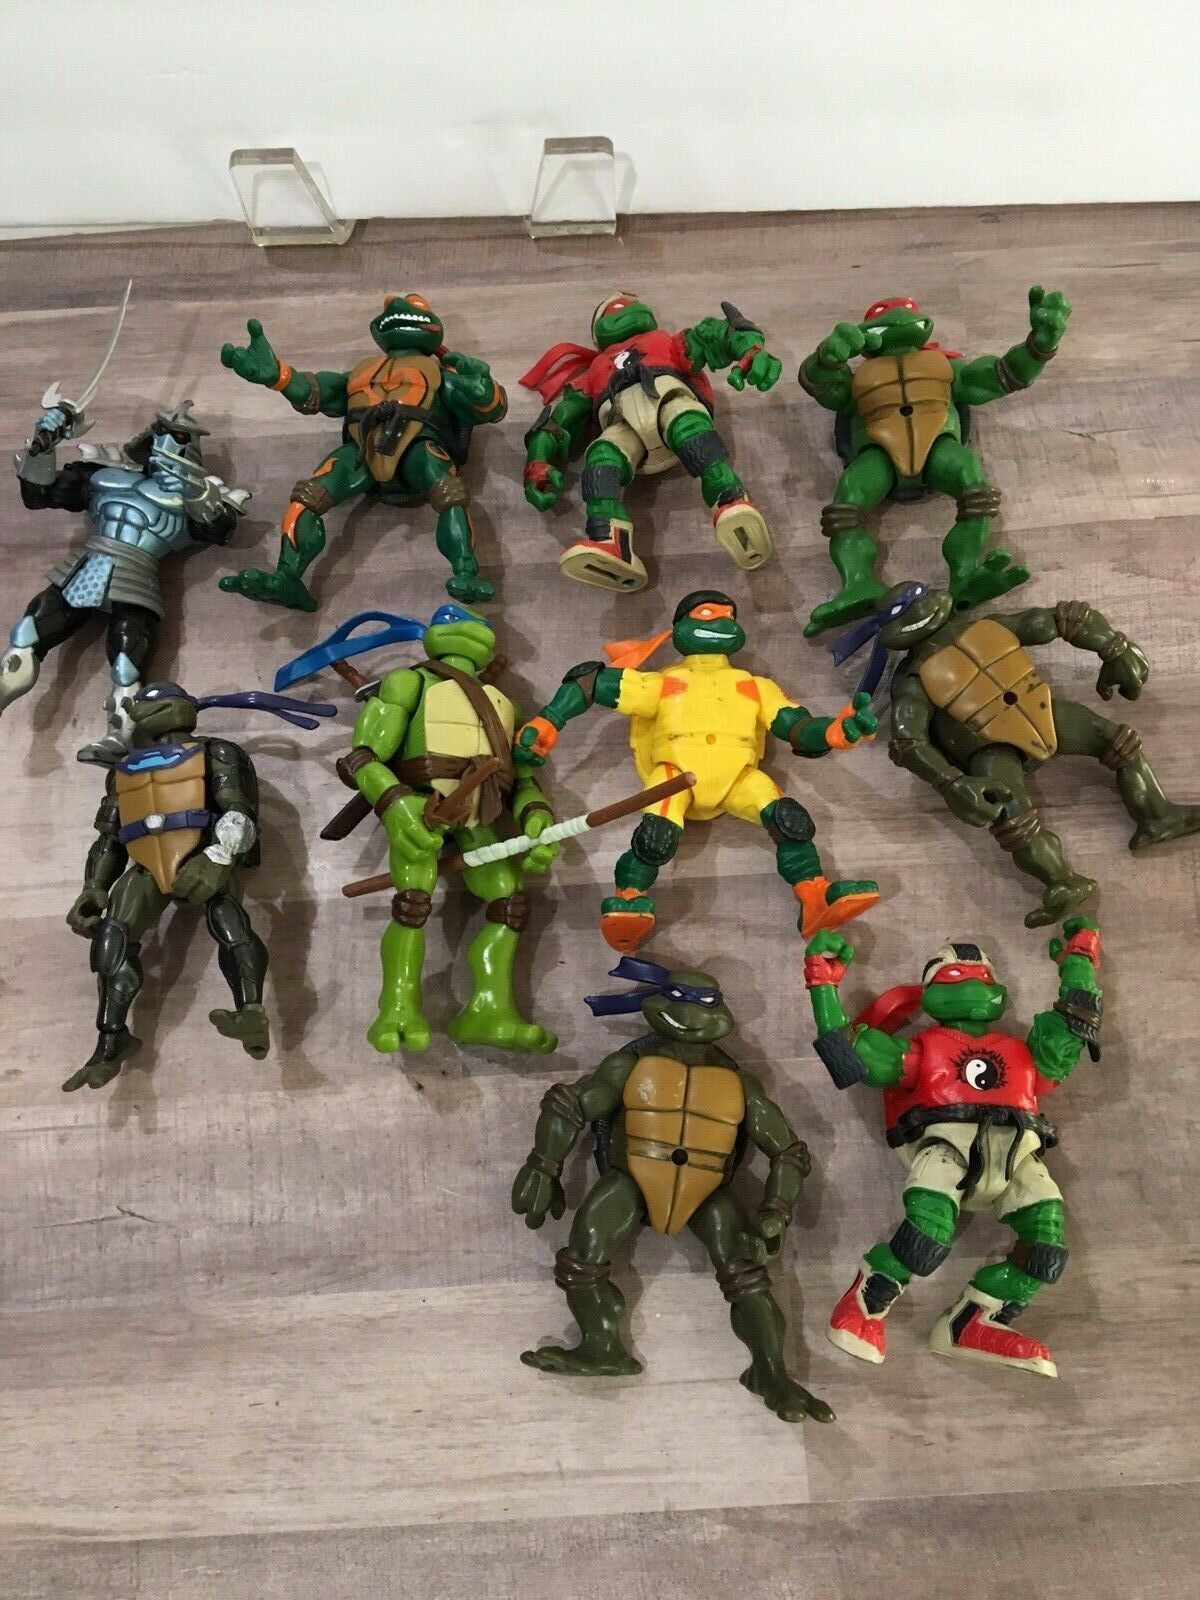 Mutant Ninja Turtle mixed Lot 10 Action Figures 6  Tall Mirage Studios 2000-2003